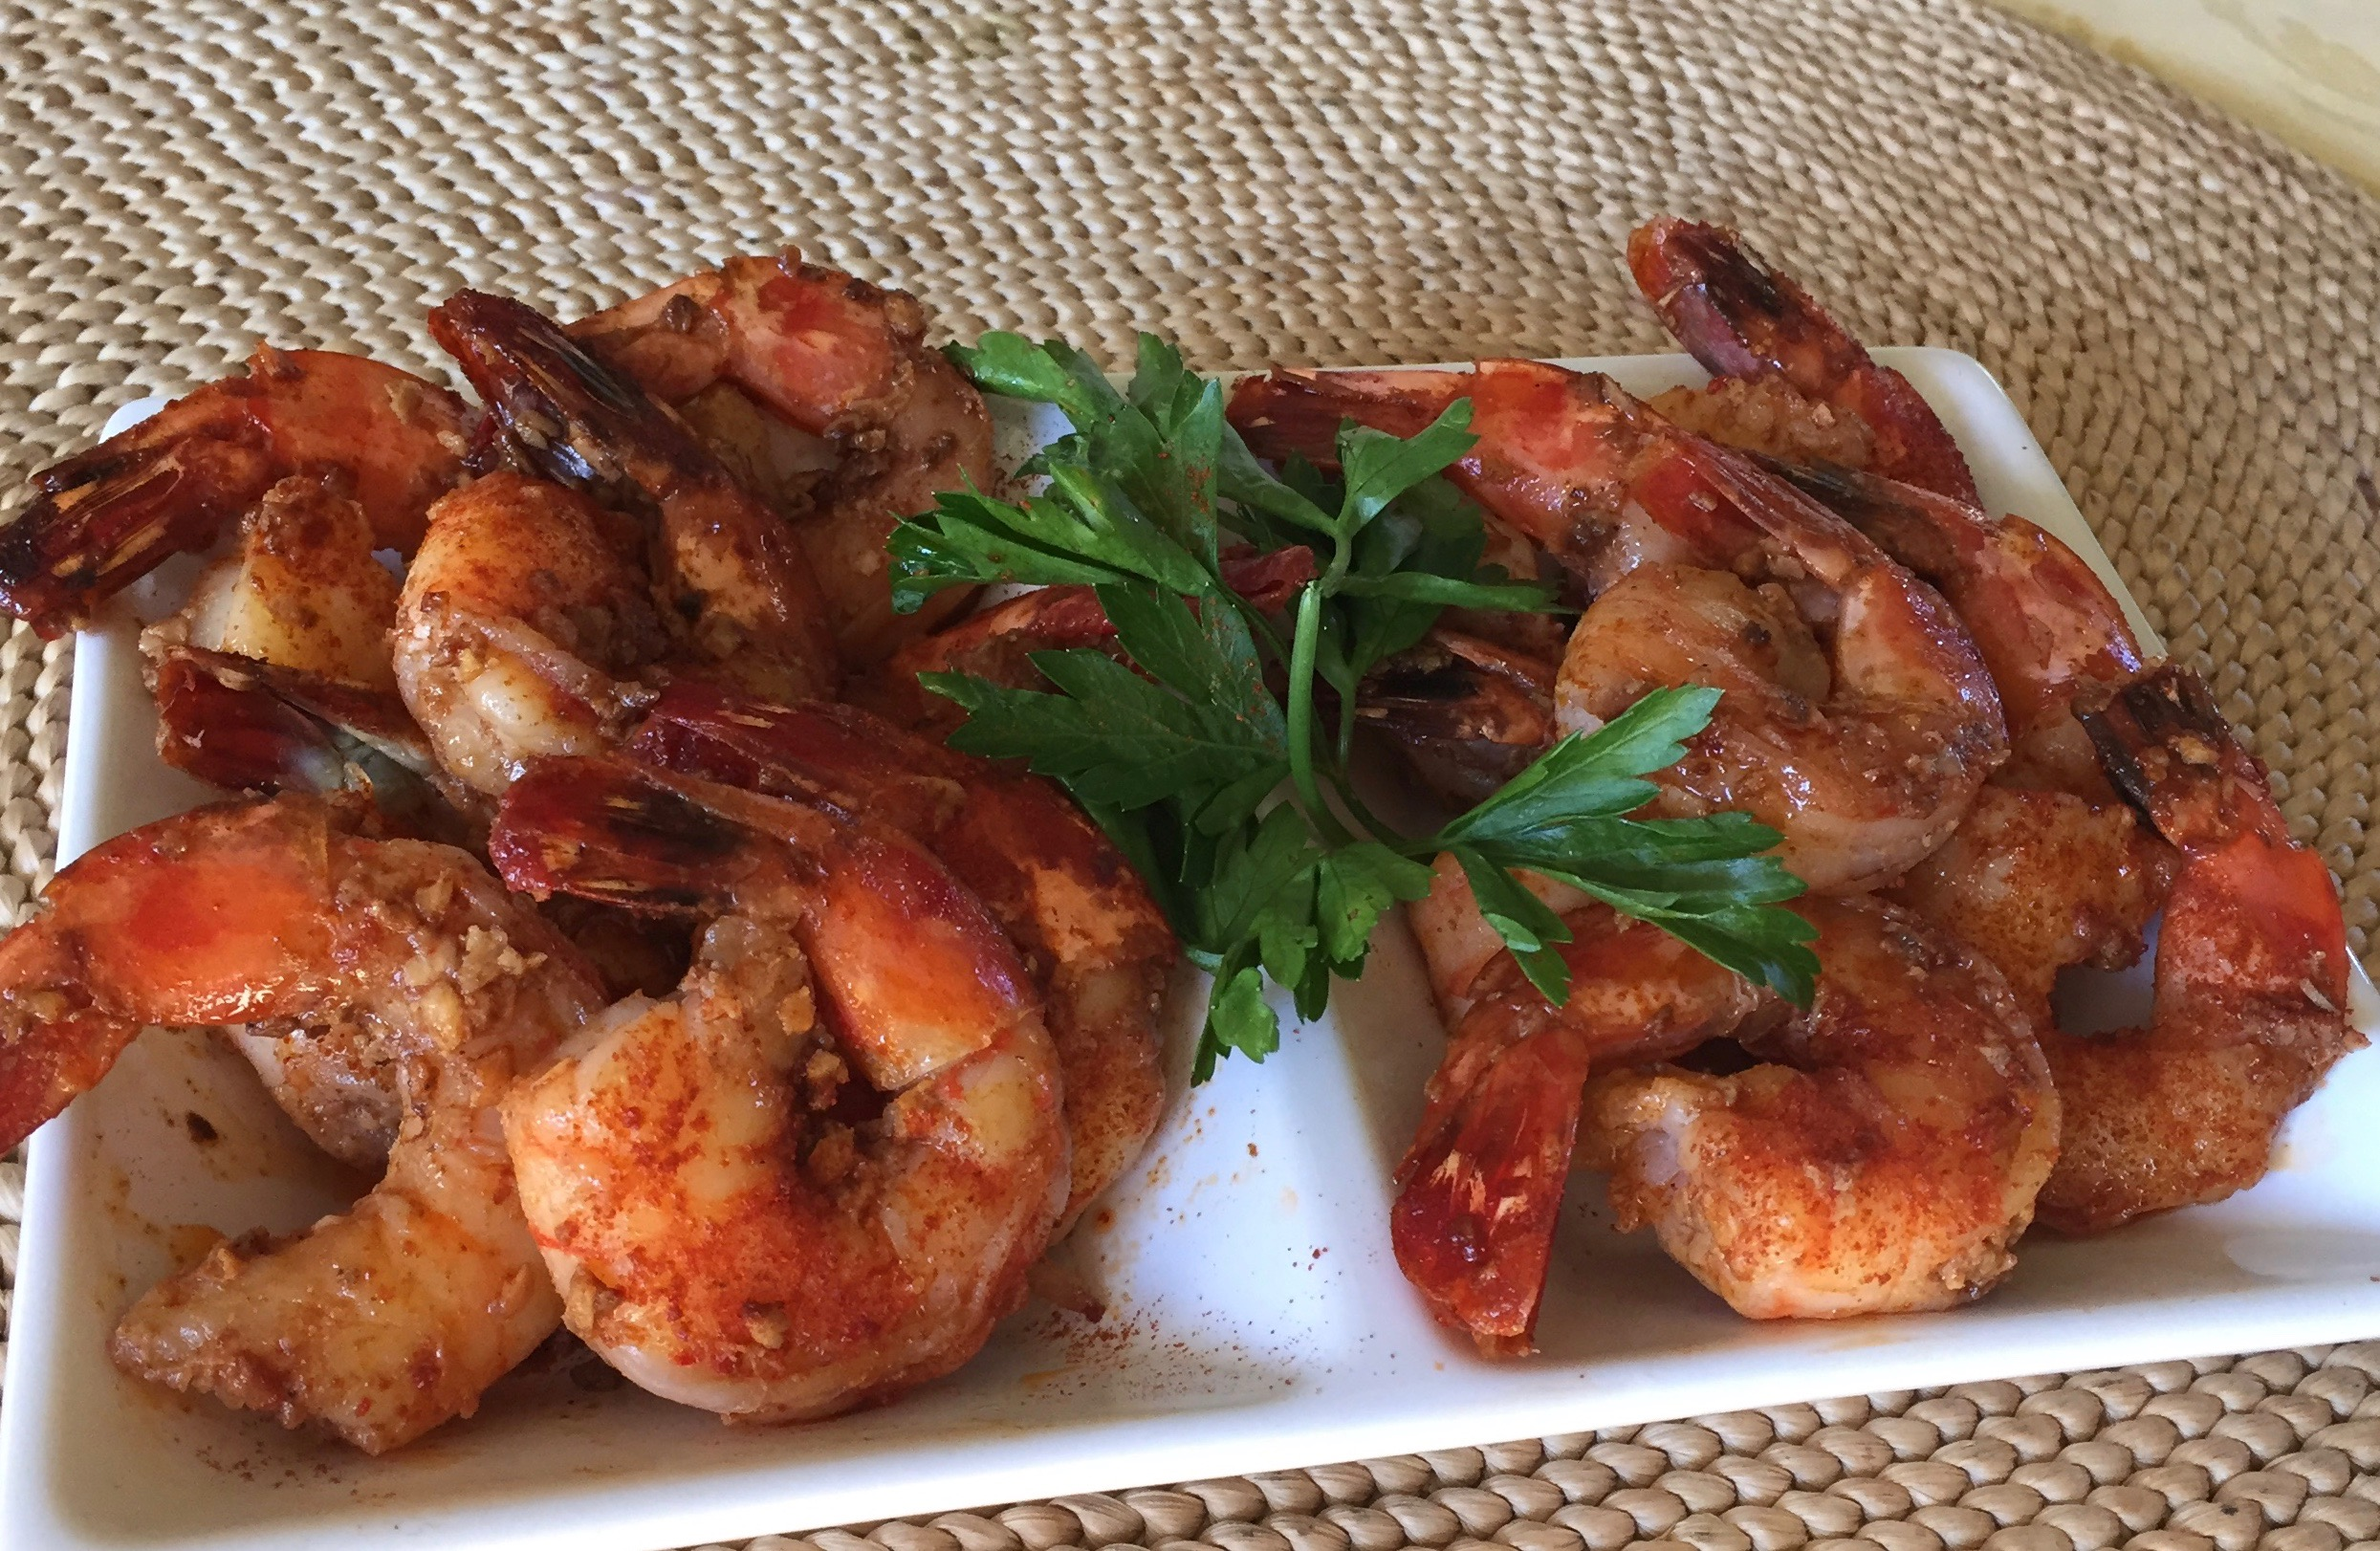 Garlic Shrimp Piment d'Espellette.jpg